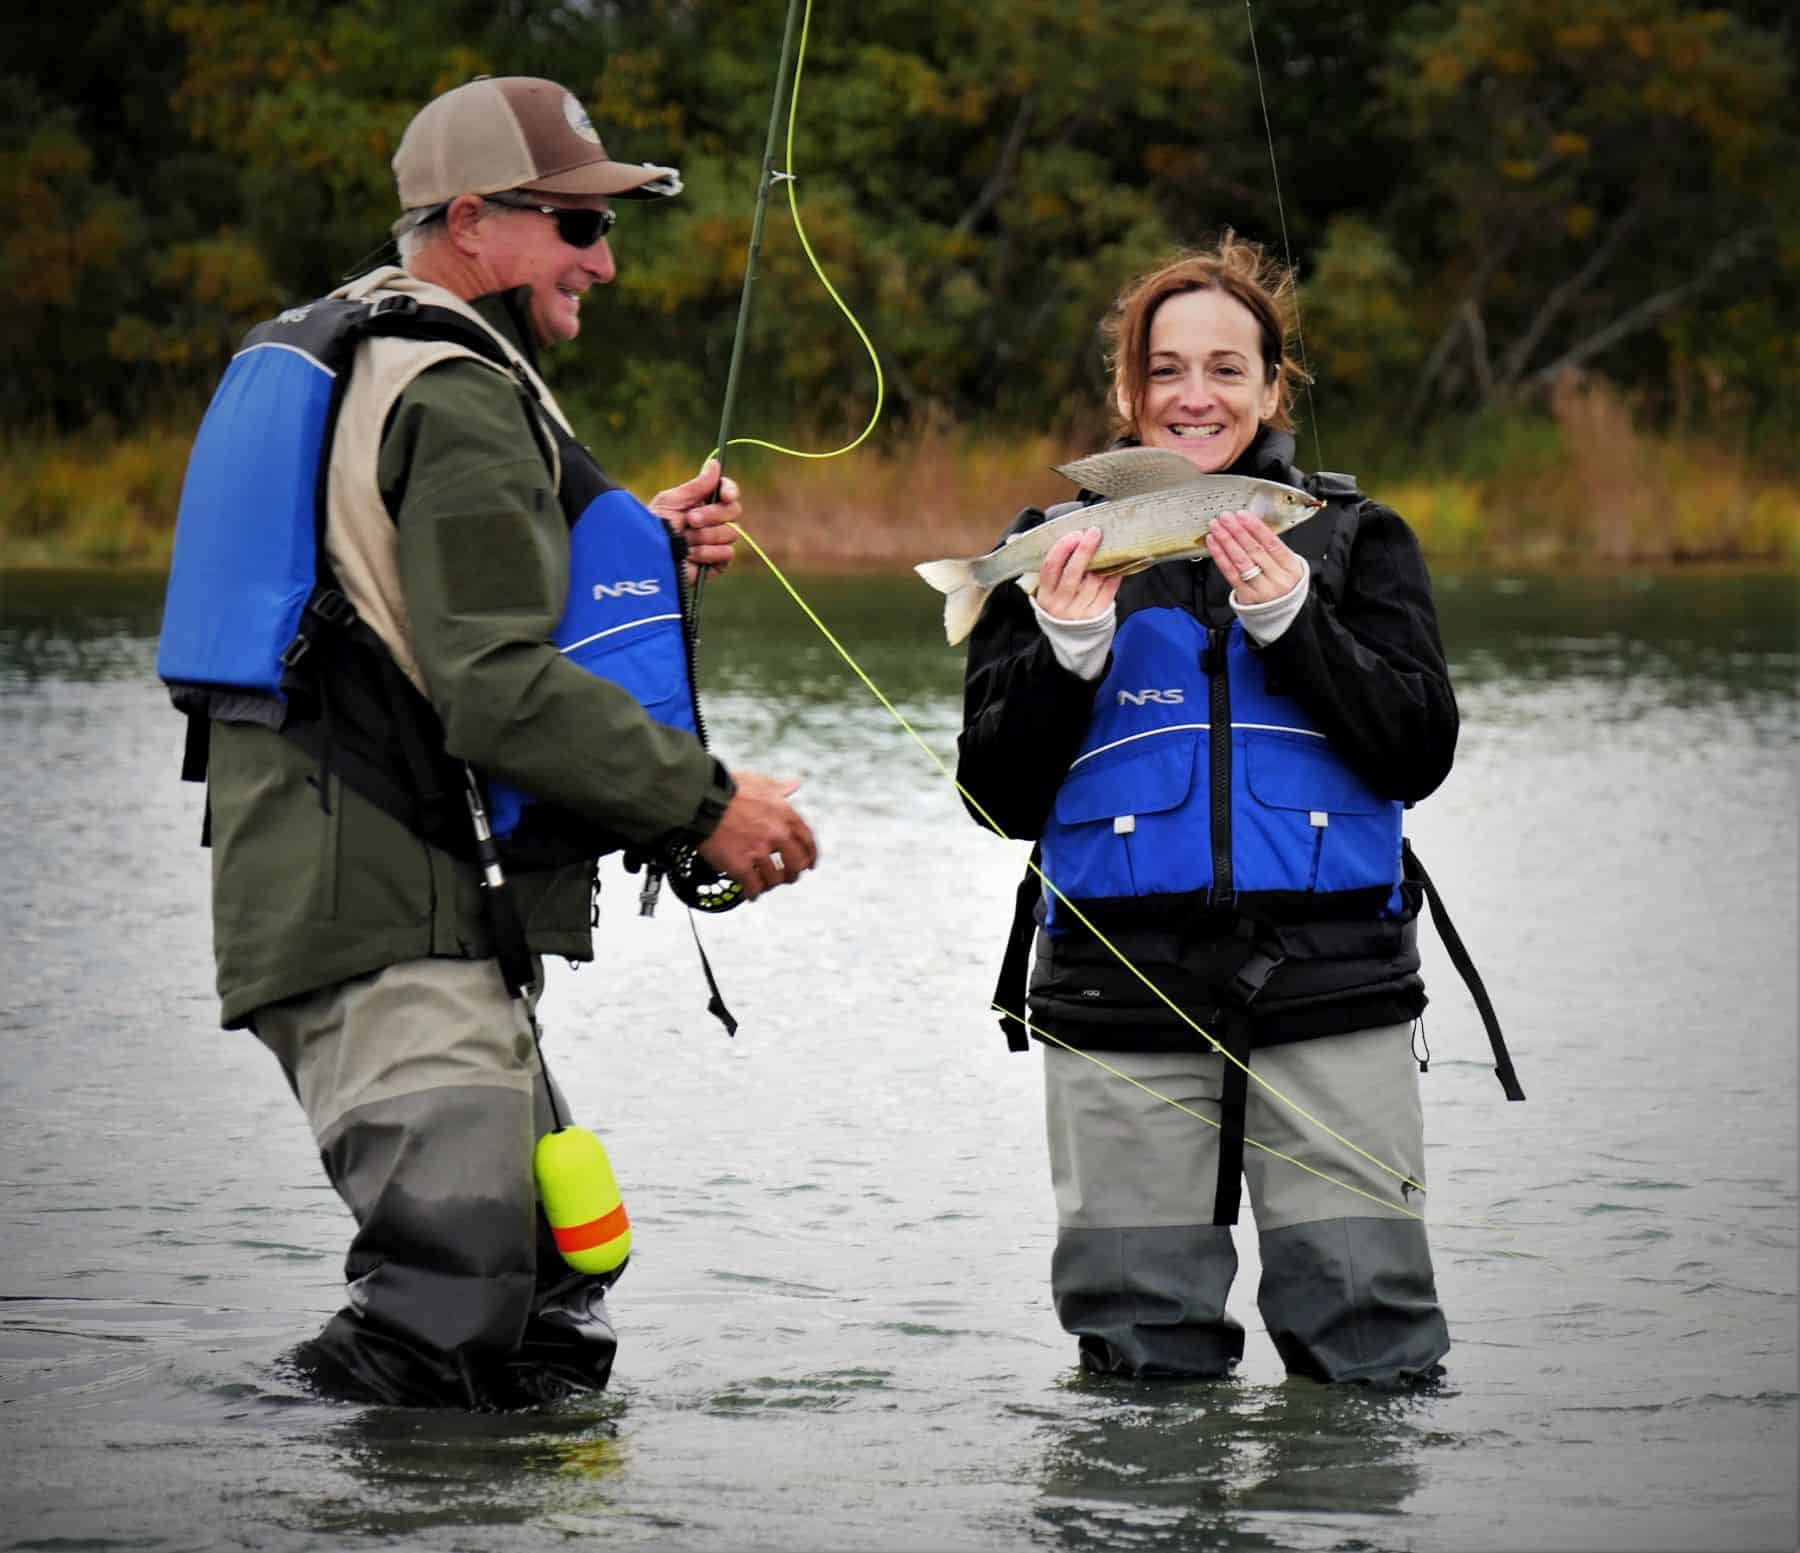 Carole was excited to catch one of her many fish including for Fly girl fishing charters